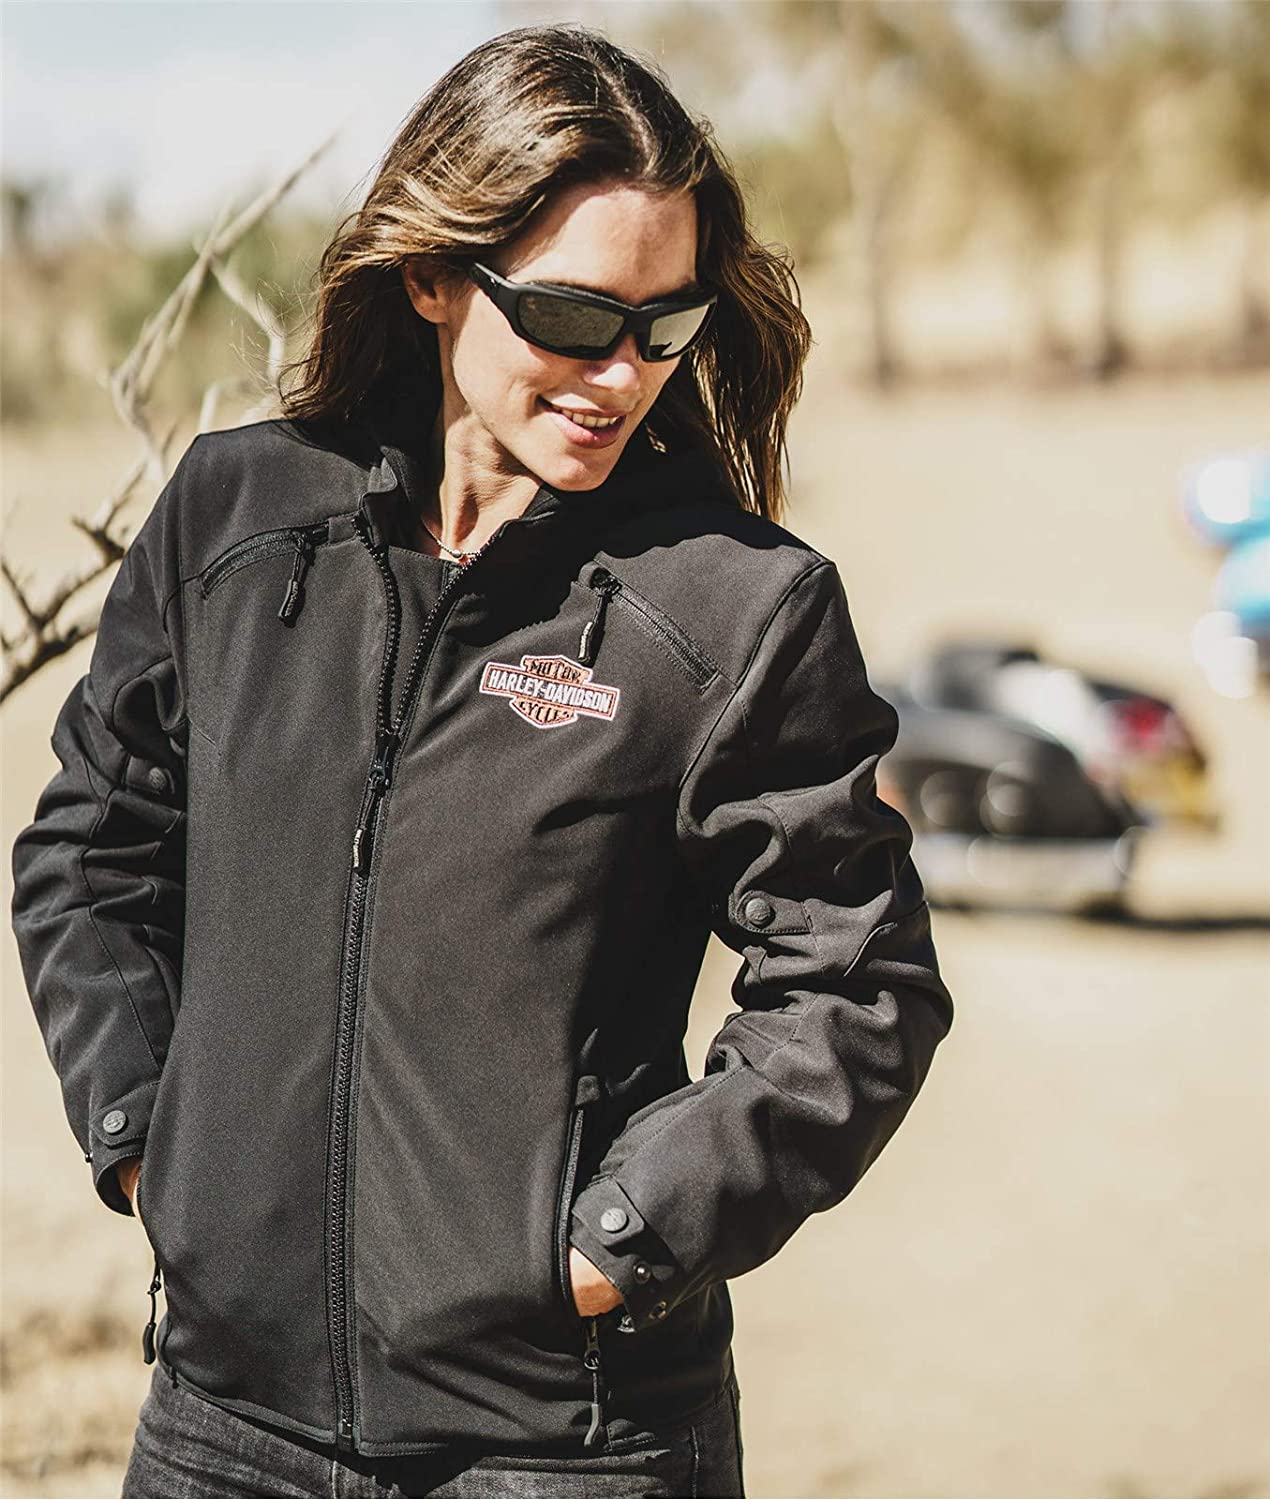 Harley Davidson Legend 3 In 1 Women S Functional Jacket Soft Shell Riding Ce L Auto